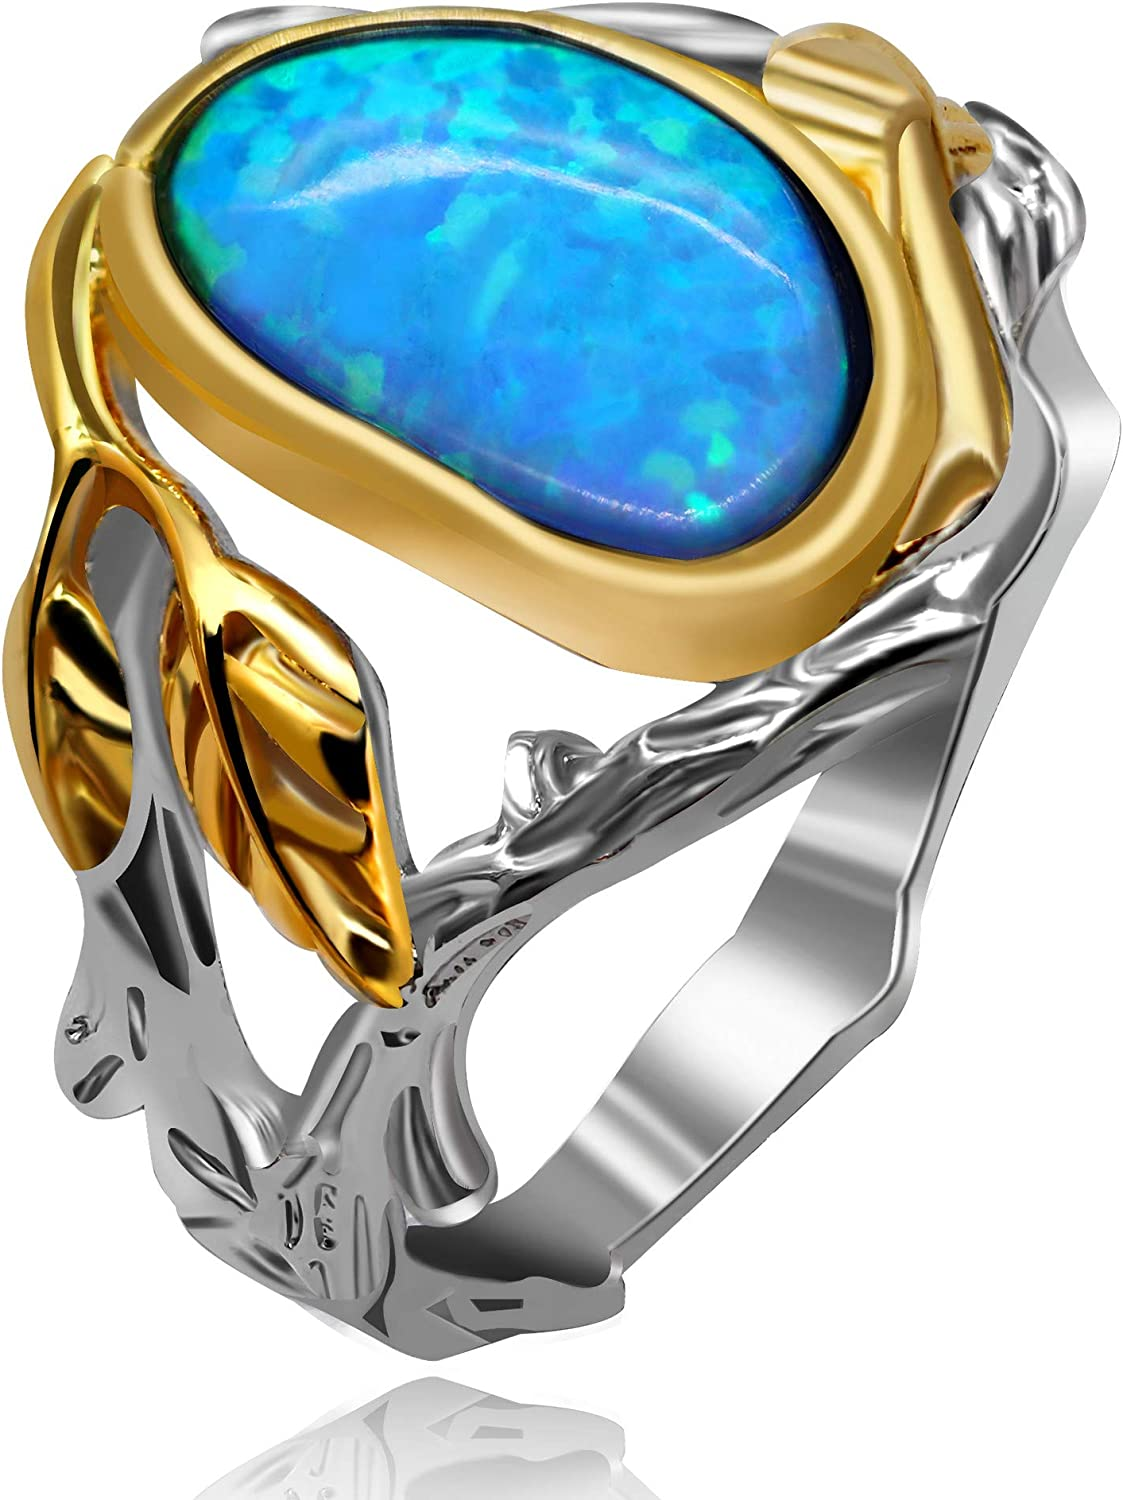 Antique Jewelry Antique Opal Rings for Women Wide Gold Band Womans Ring Size 6 7 8 9 Gift Statement Ring Vintage Large Oval Stone Ring